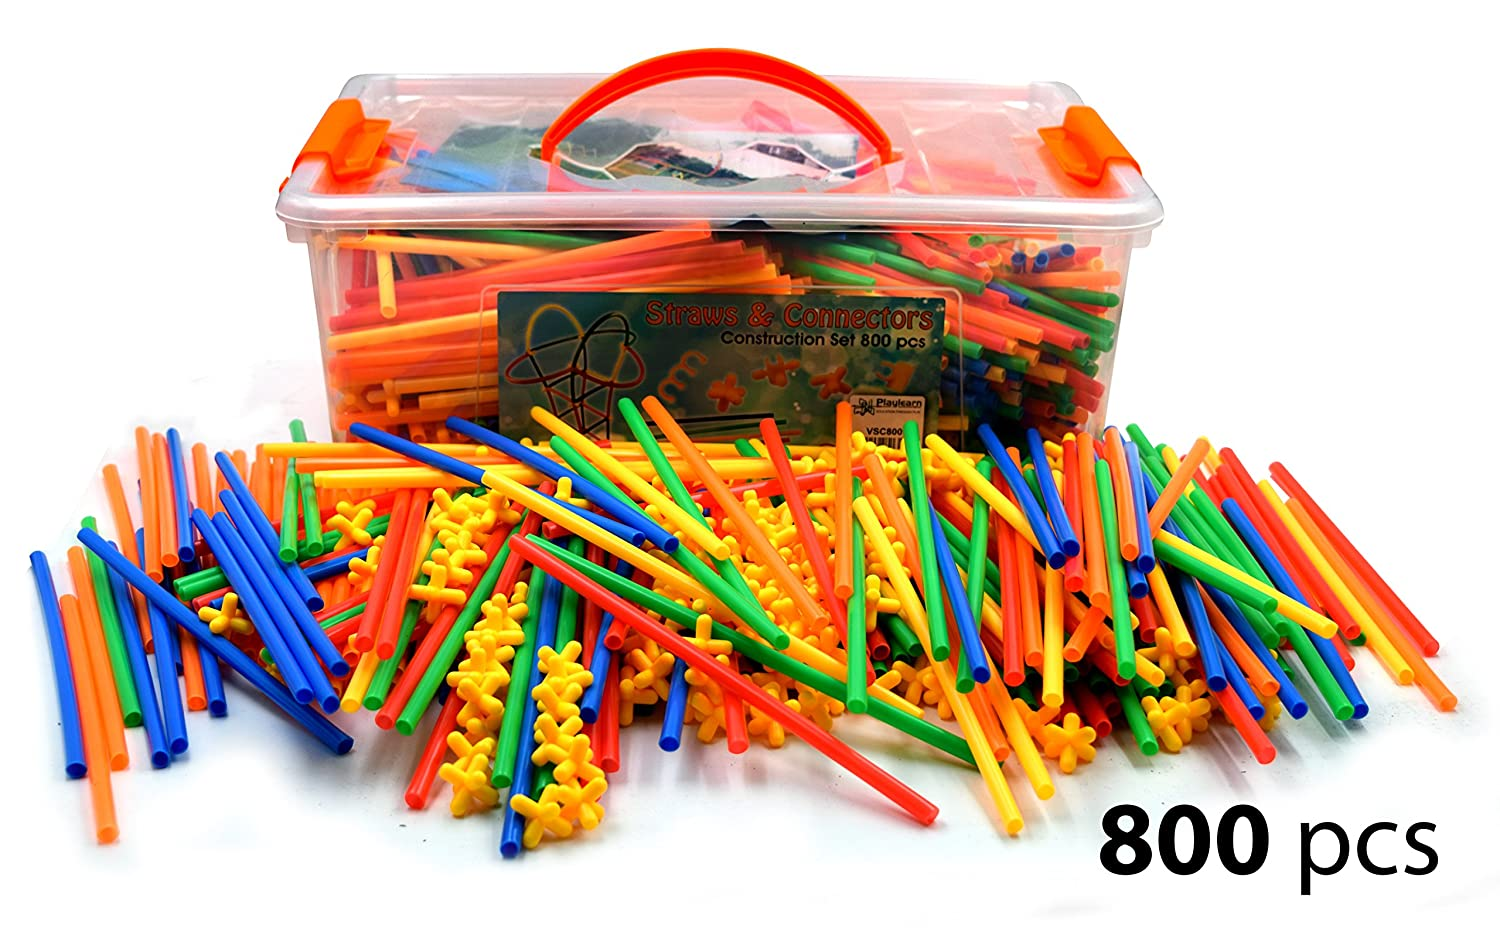 LARGE 800 Piece Straws Builders Construction Building Toy - Giant Pack with Special Connectors by Playlearn Review